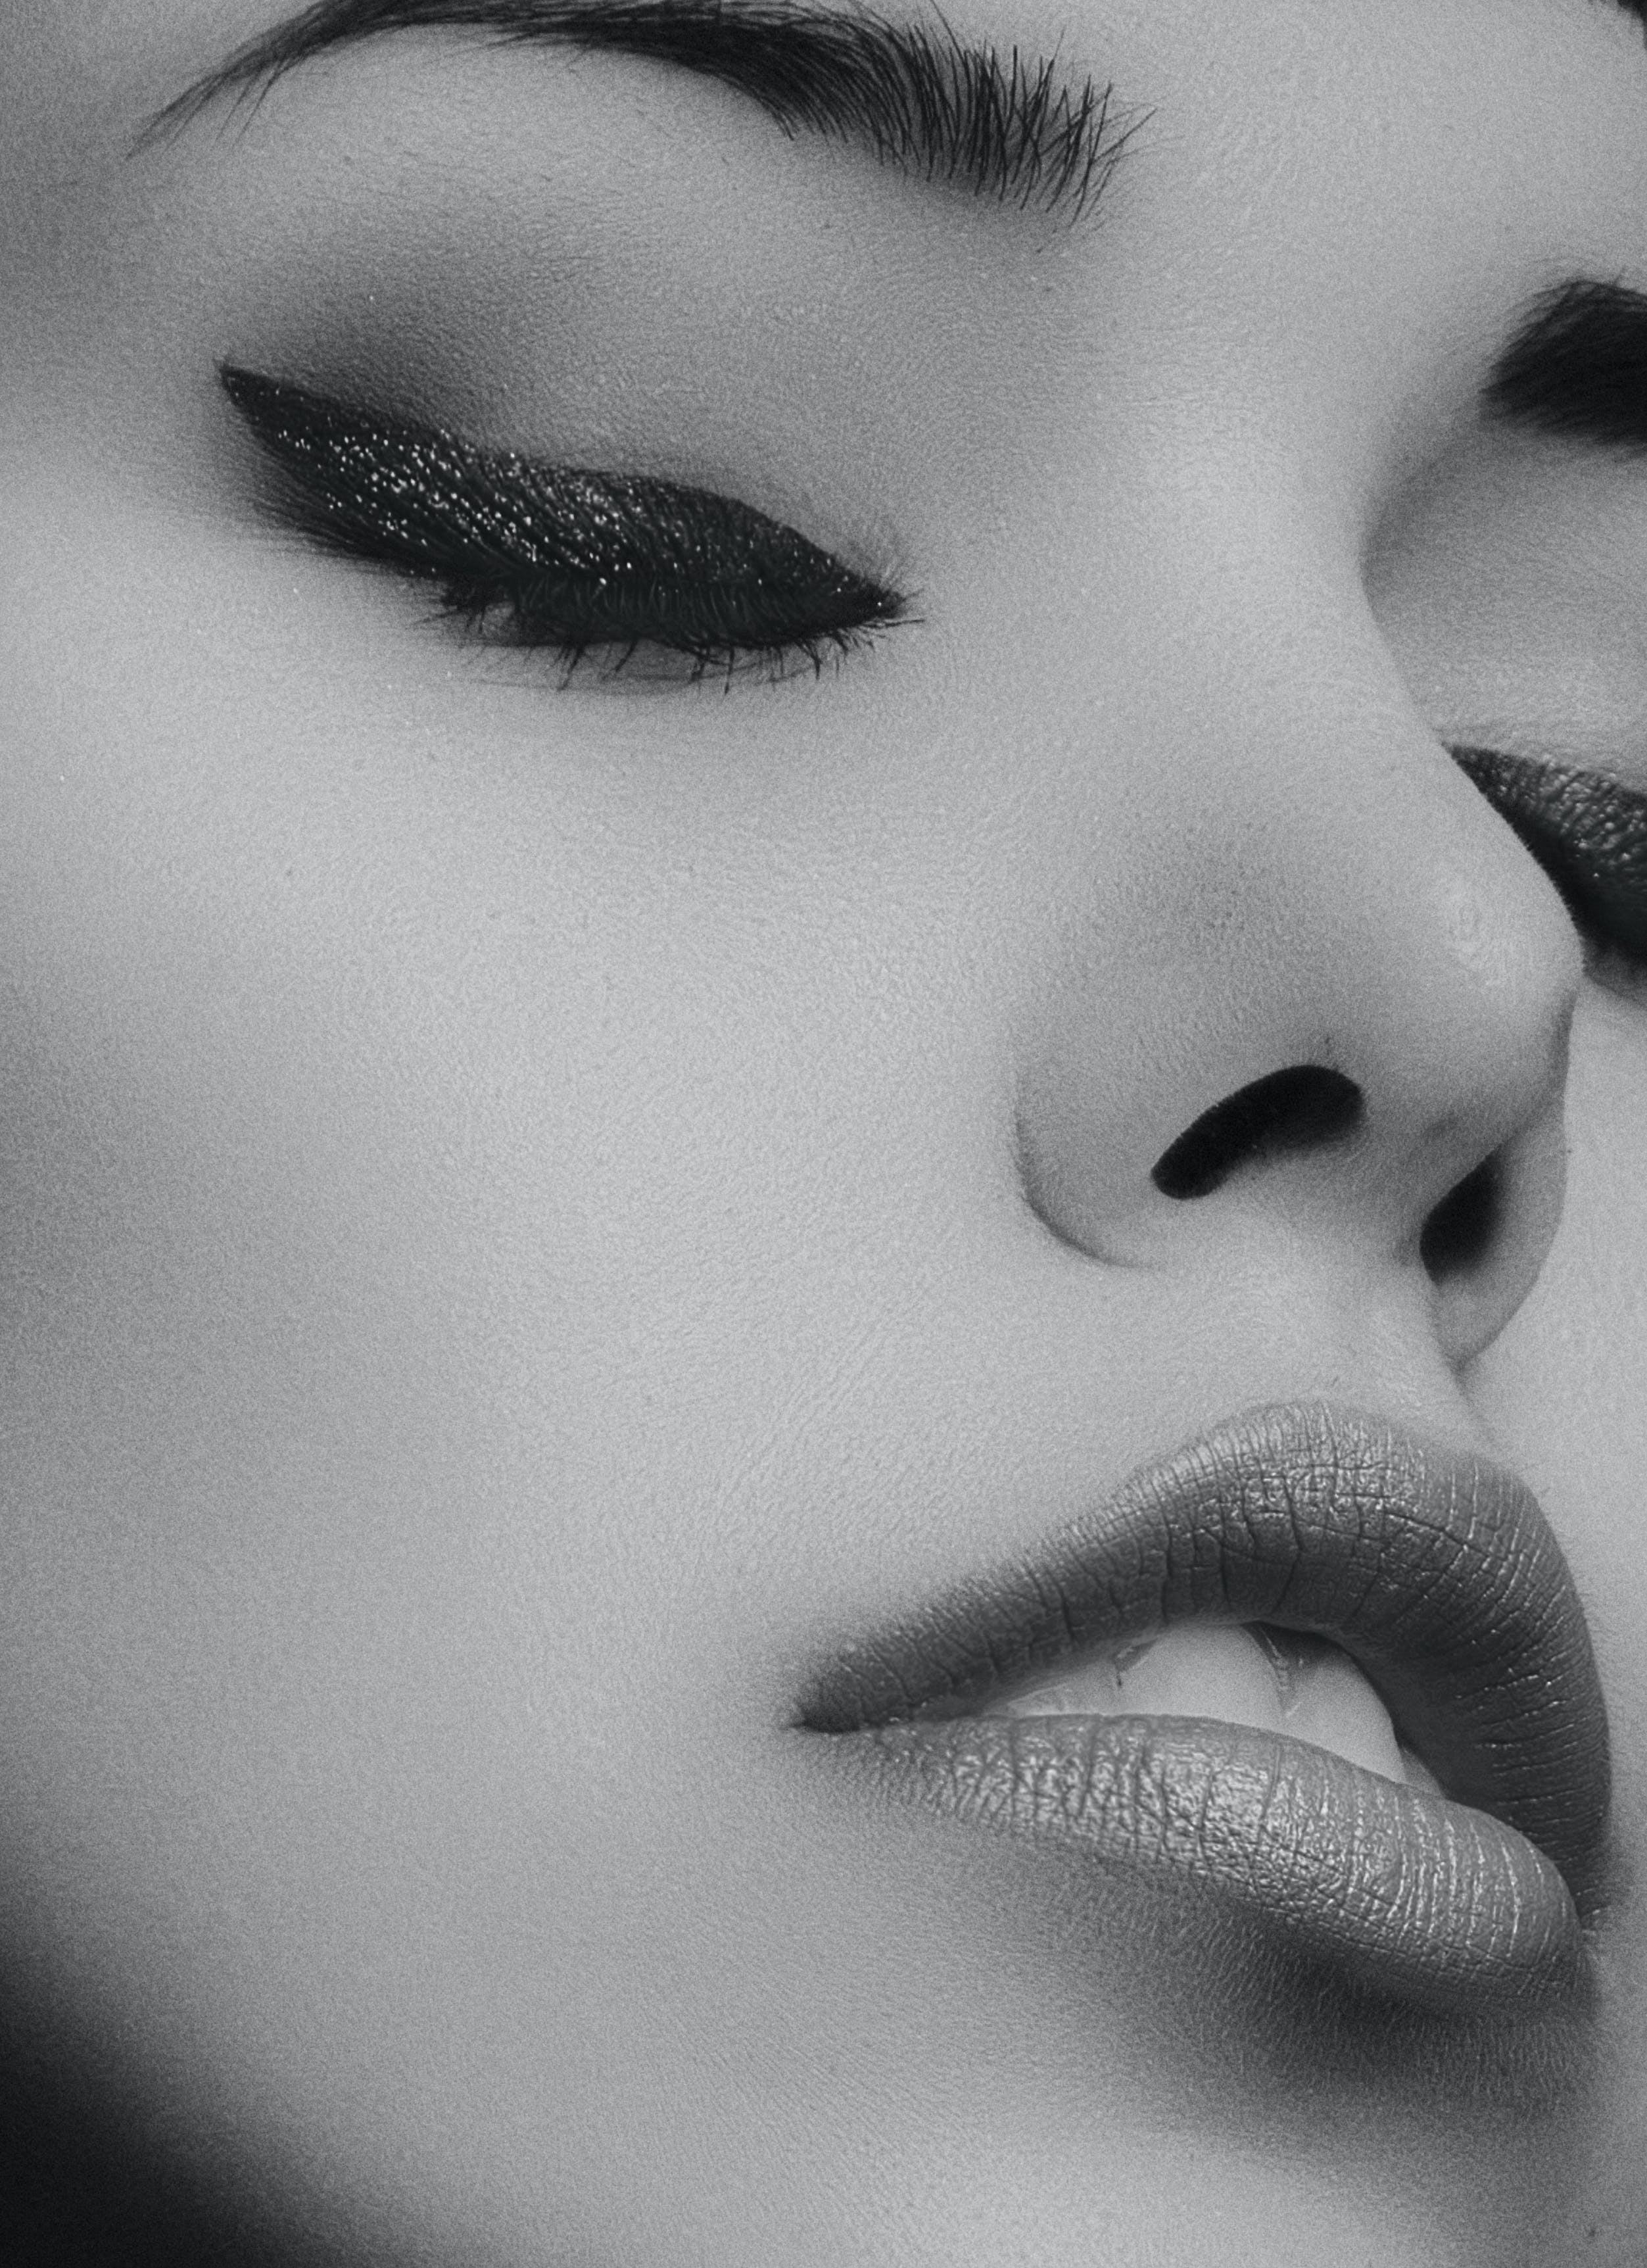 Graycale Photography of a Woman's Face